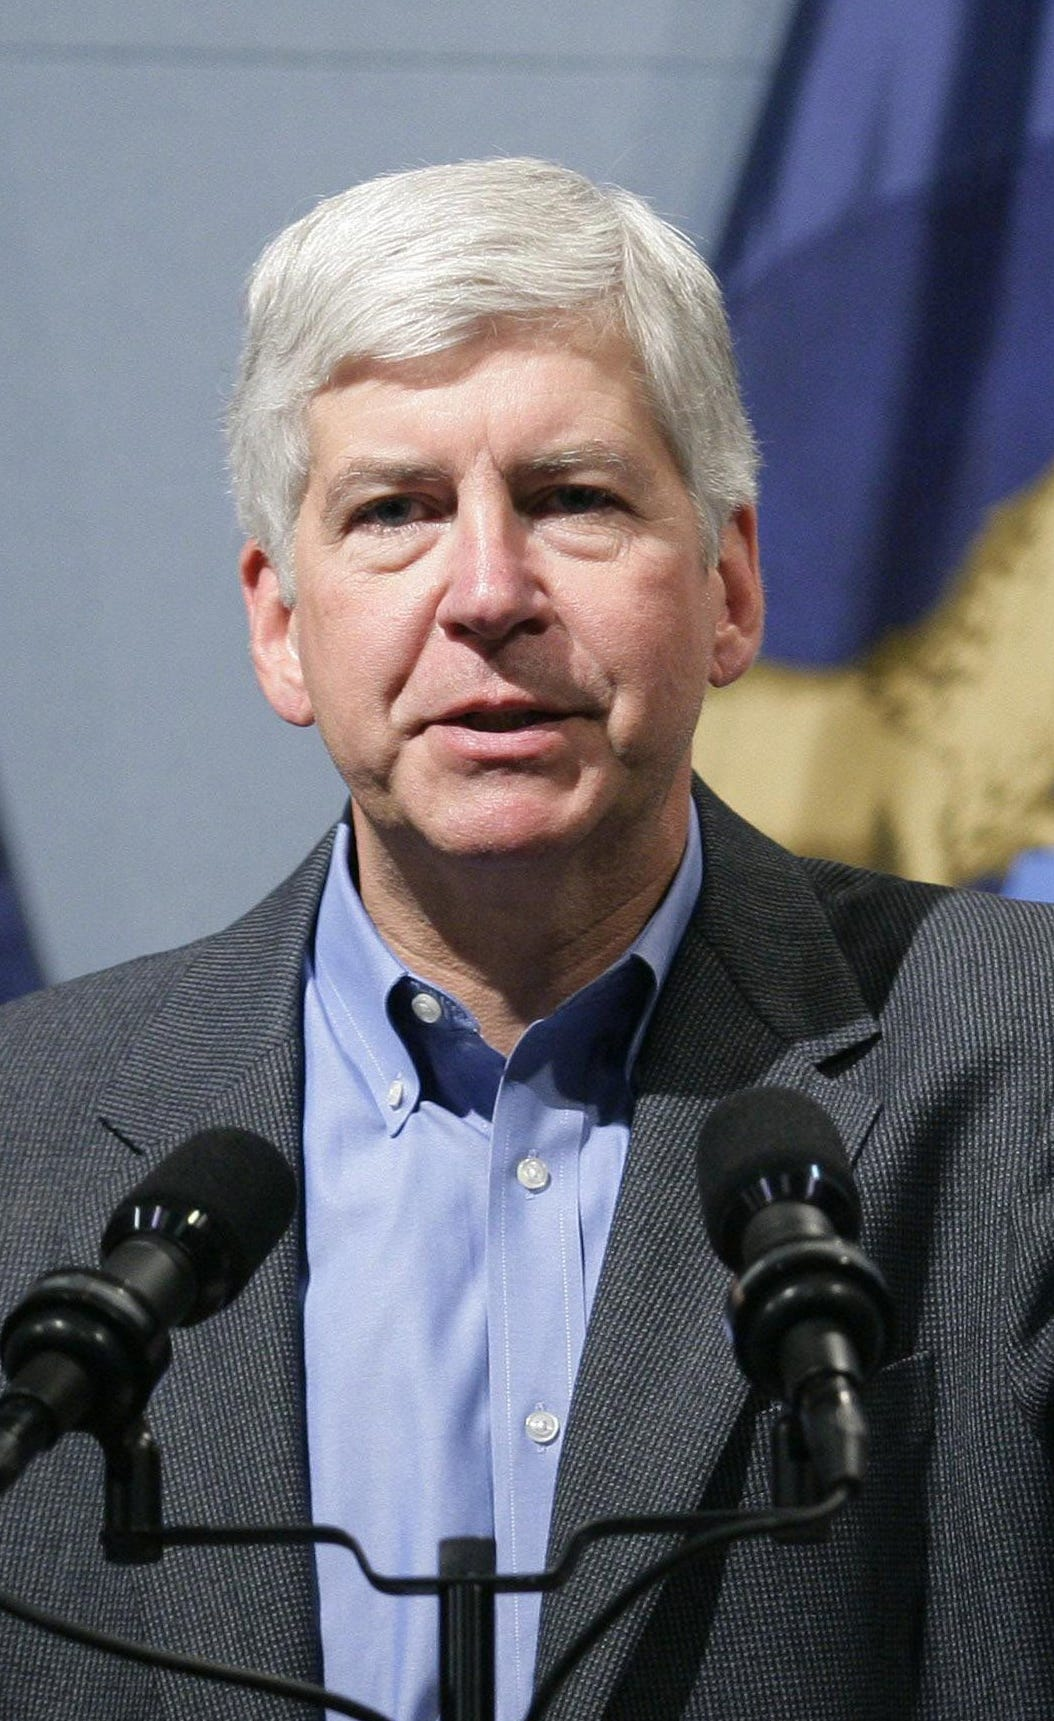 Gov. Rick Snyder expects a busy lame-duck legislative session. His priorities include pushing through trash and water fee increases to pay for environmental cleanup, infrastructure and recycling needs.